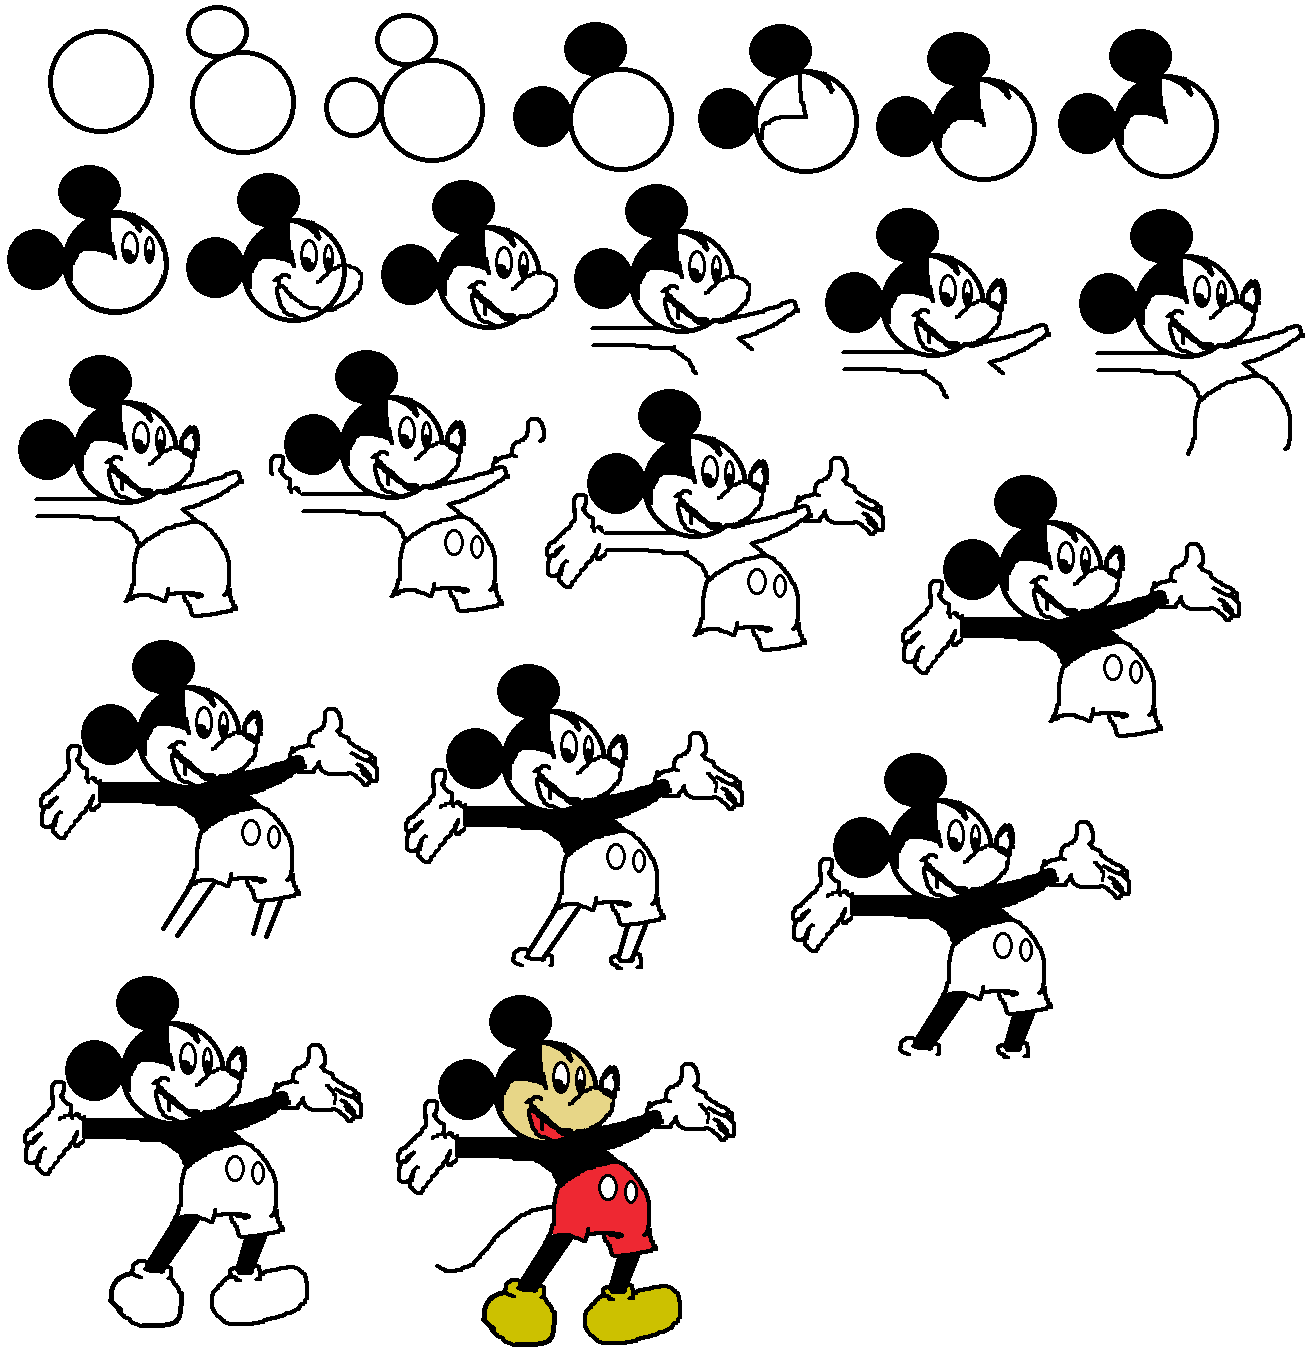 how draw mickey mouse step by step how to draw mickey mouse step by step pictures cool2bkids how step draw mickey step by mouse